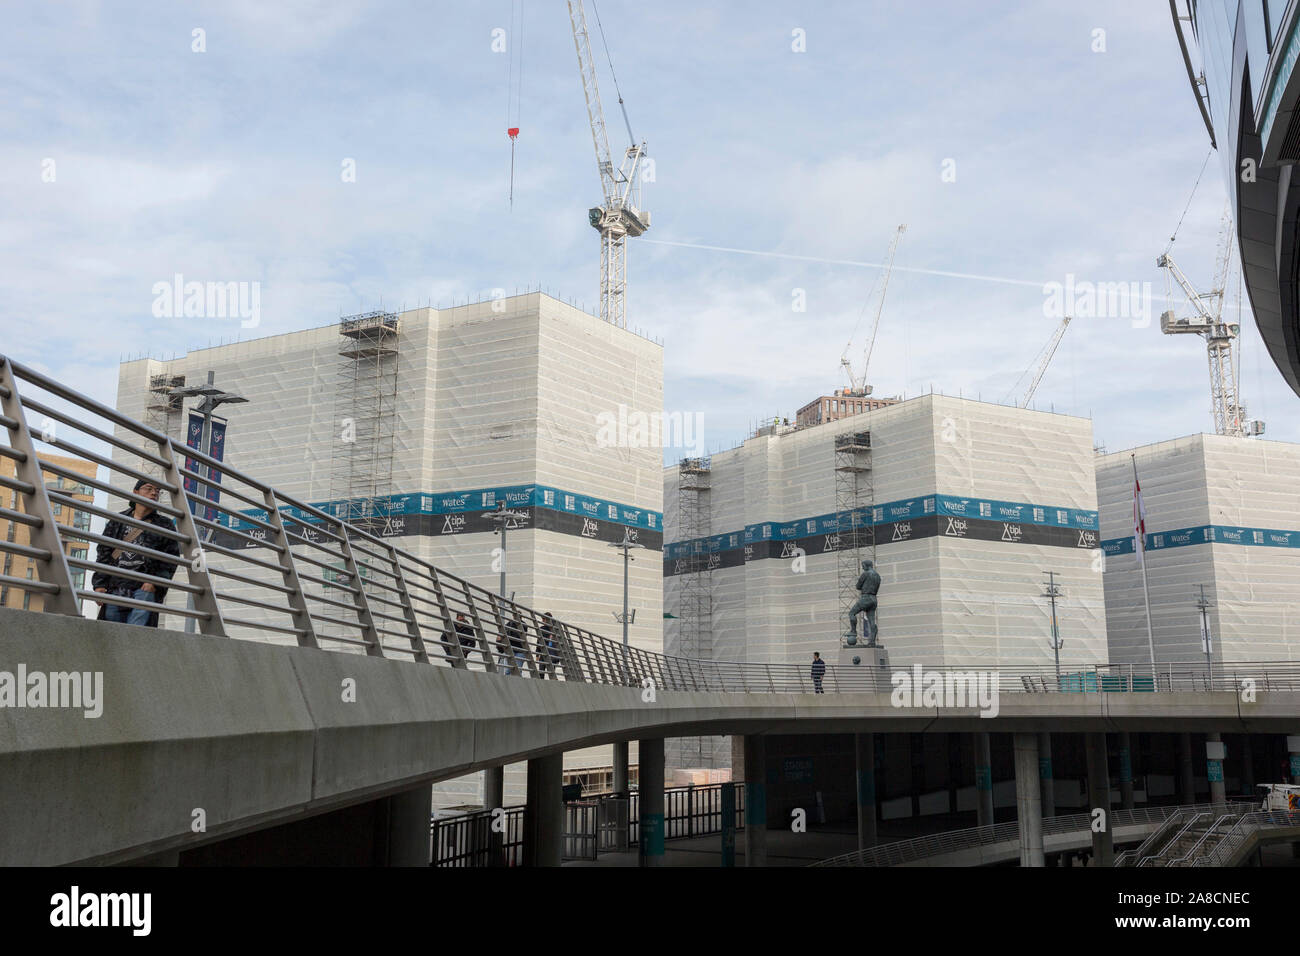 A landscape of regeneration around the Wembley Stadium arena where new properties are under construction tower over the statue of English football's most loved player, Bobby Moore, on 6th November 2019, in Wembley, London, England. Sir Bobby Moore captained England to its World Cup victory against Germany at the old Wembley stadium in 1966. Stock Photo